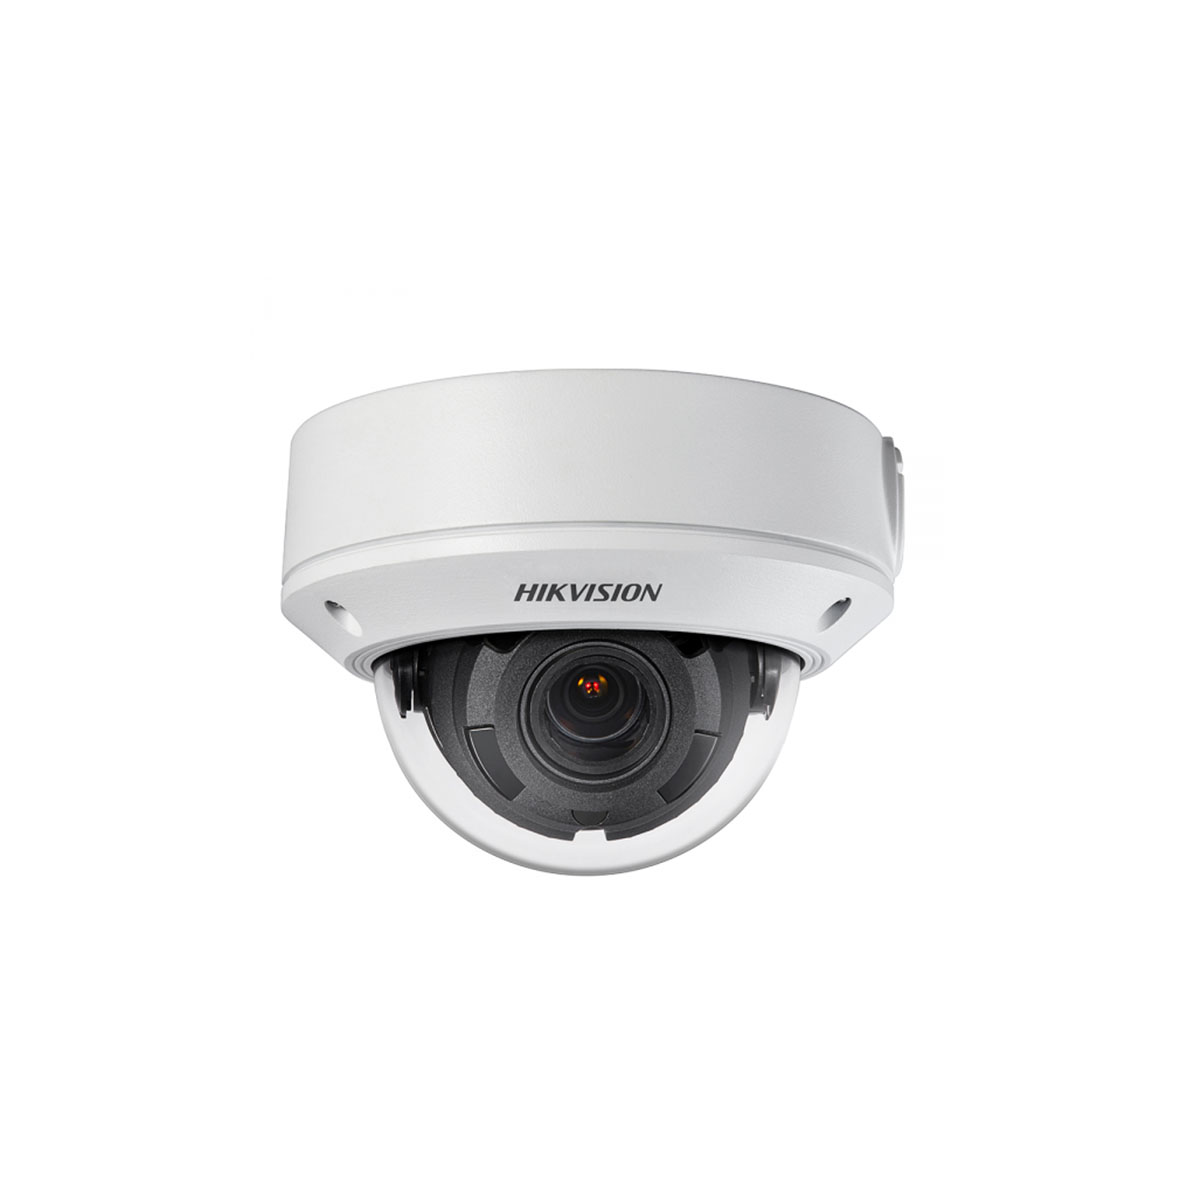 Cámara Hikvision DS-2CD1743G0-IZ IP Tipo Domo 4MP